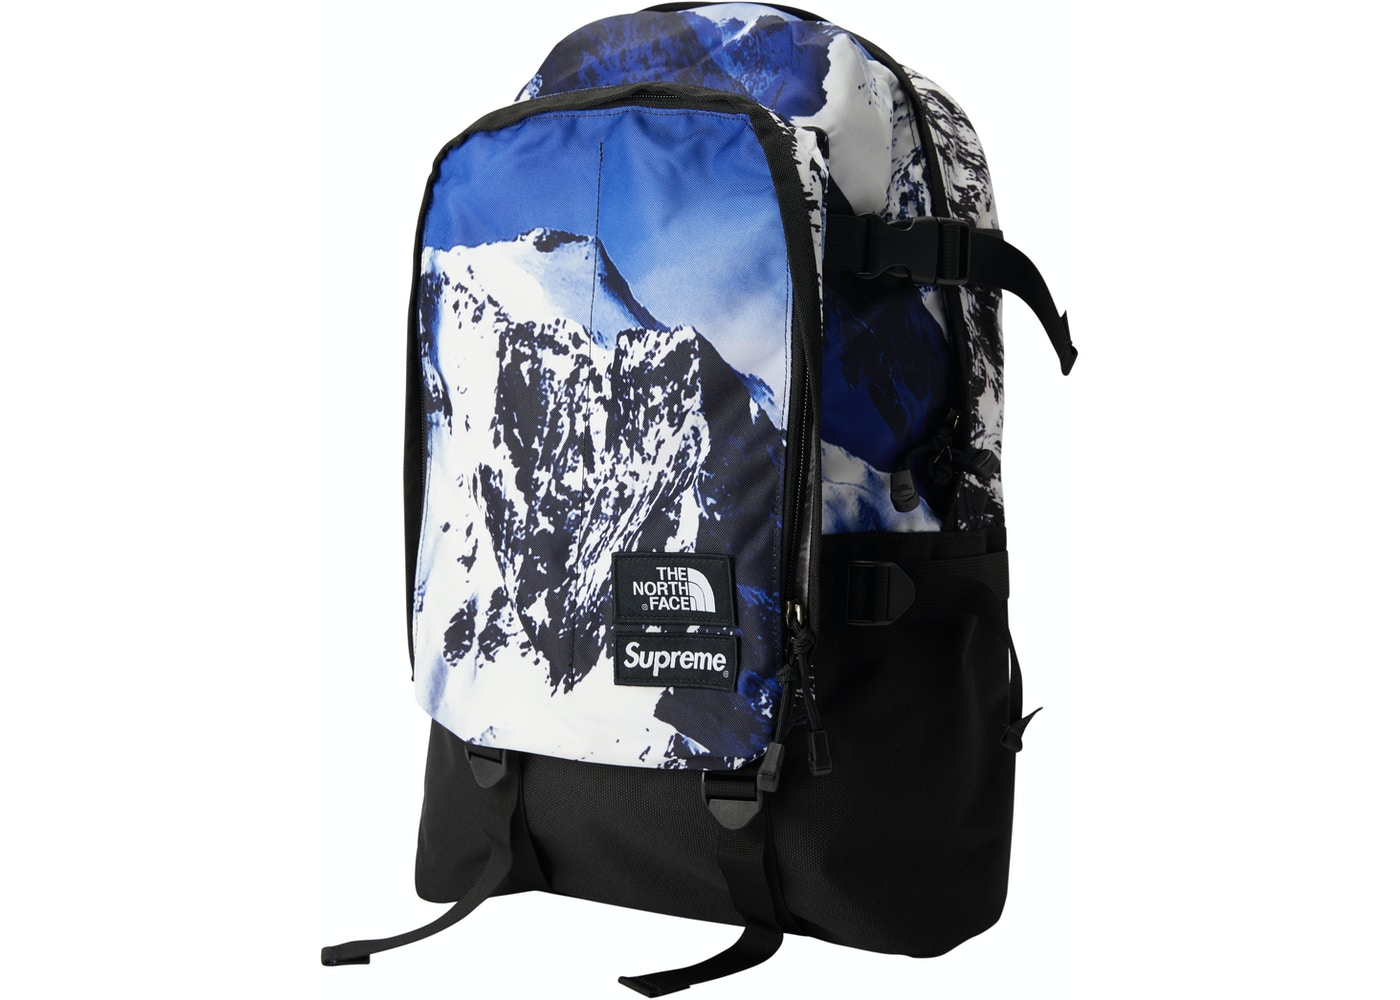 868dc409f Supreme The North Face Mountain Expedition Backpack Blue/White